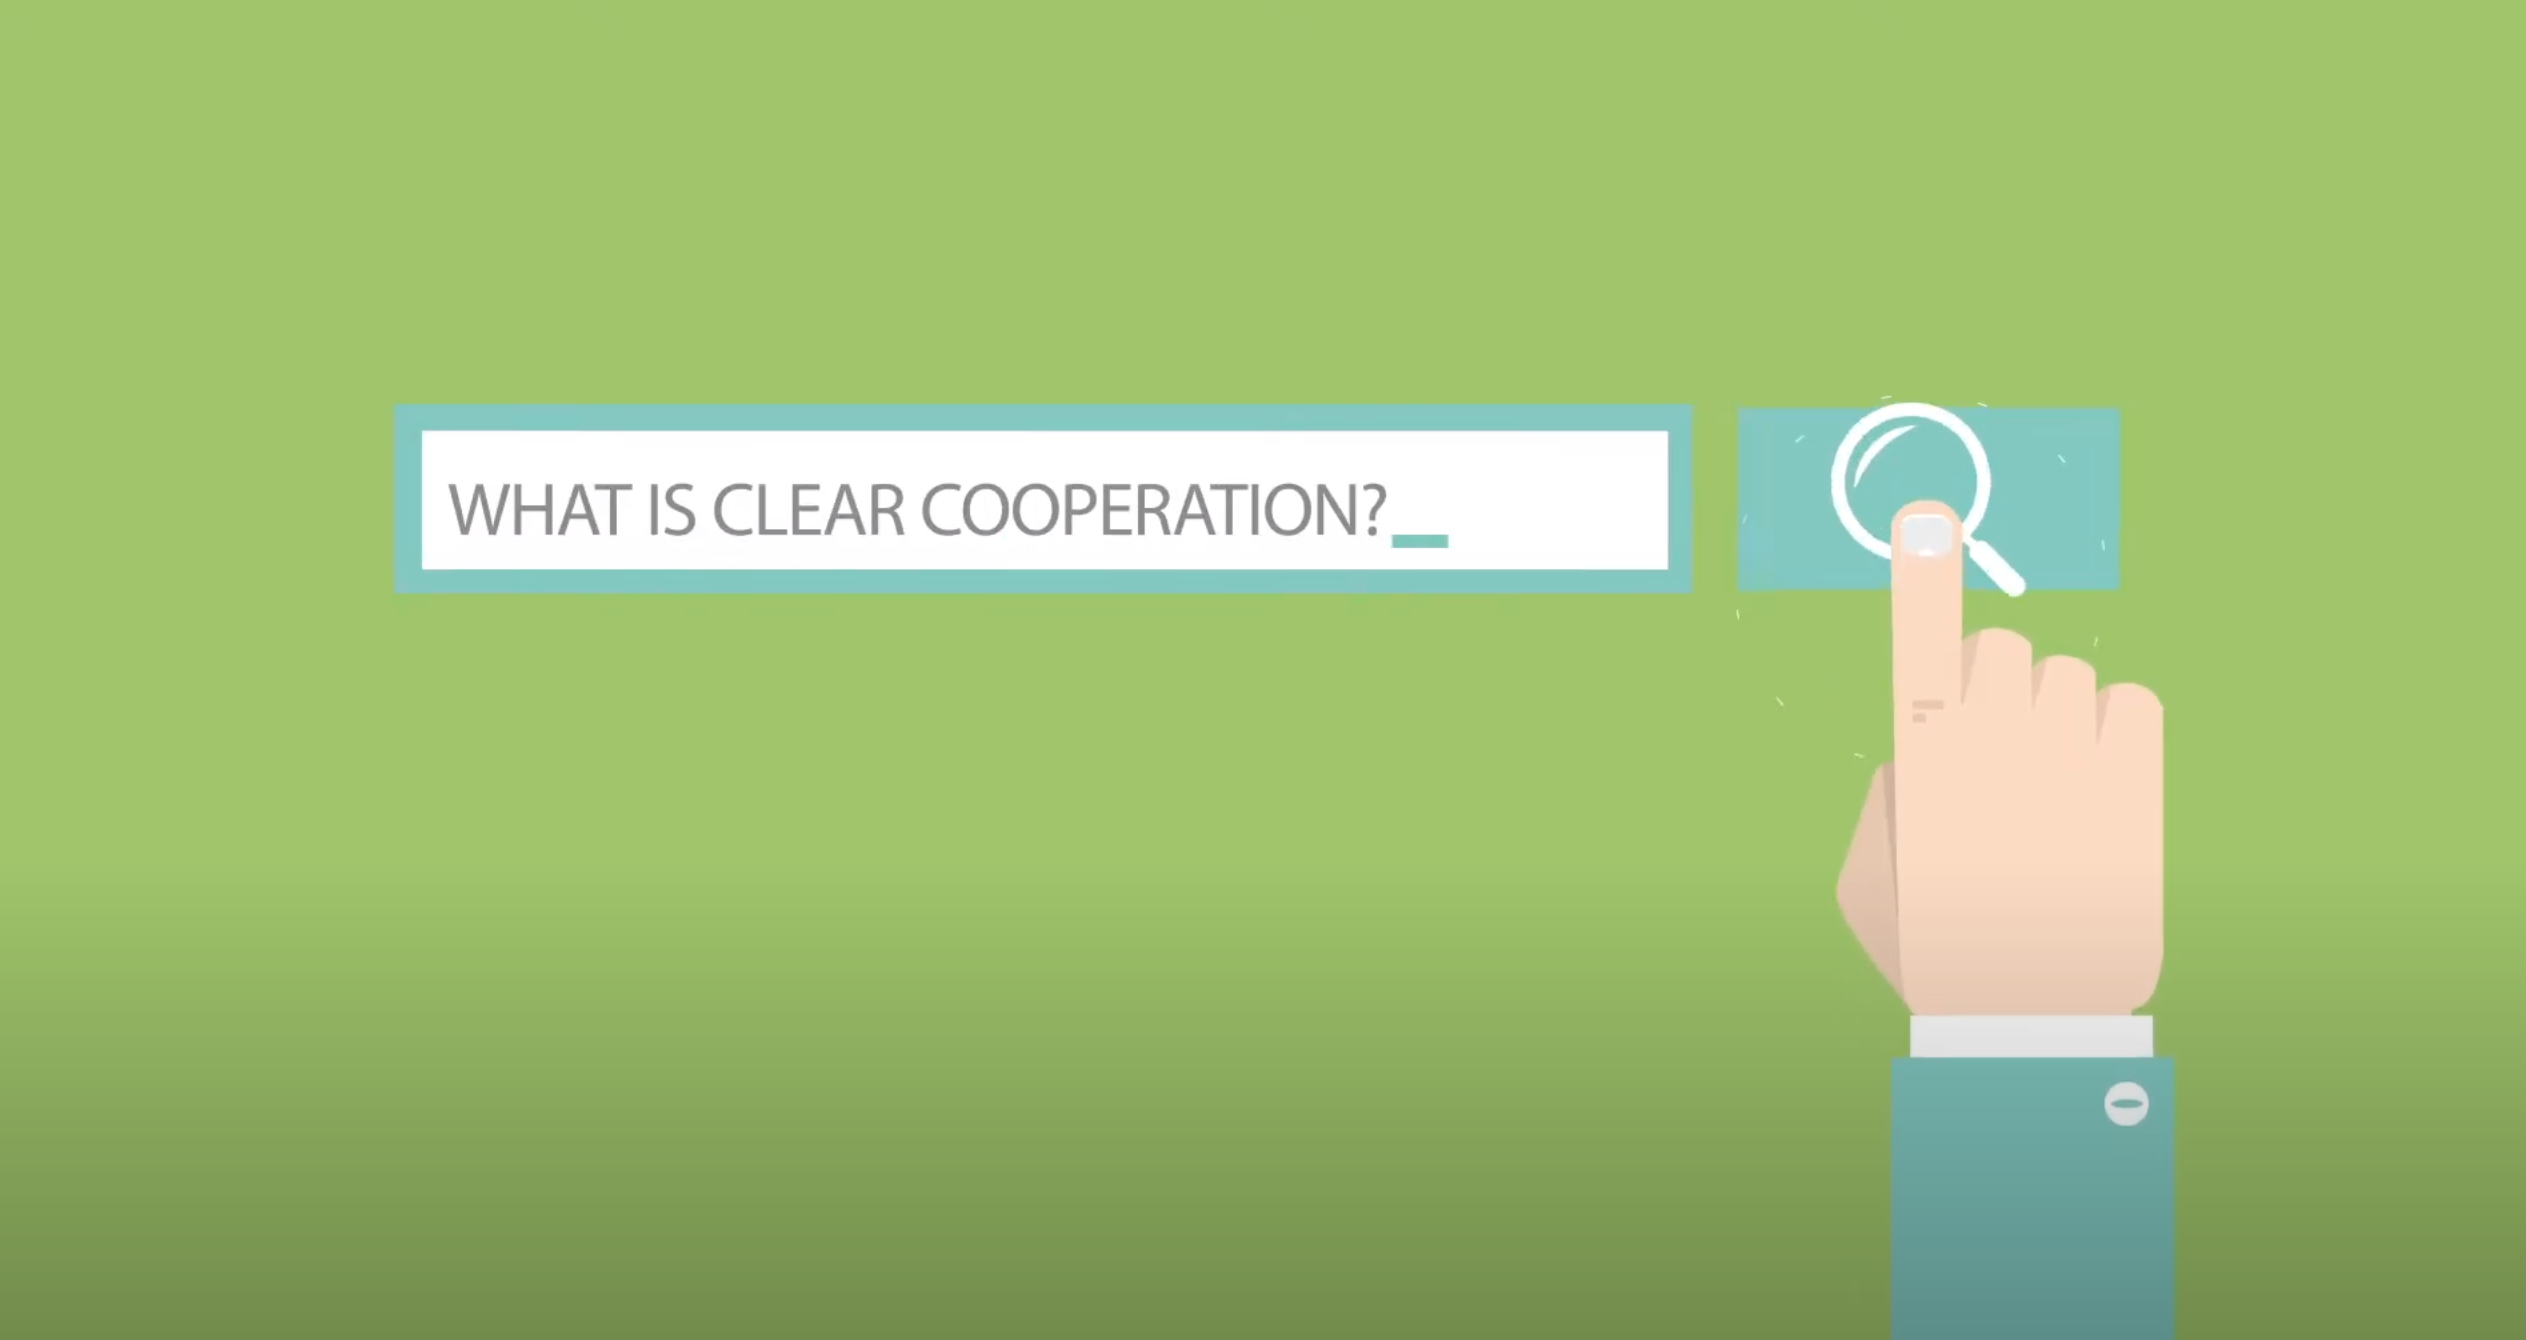 What Clear Cooperation Means